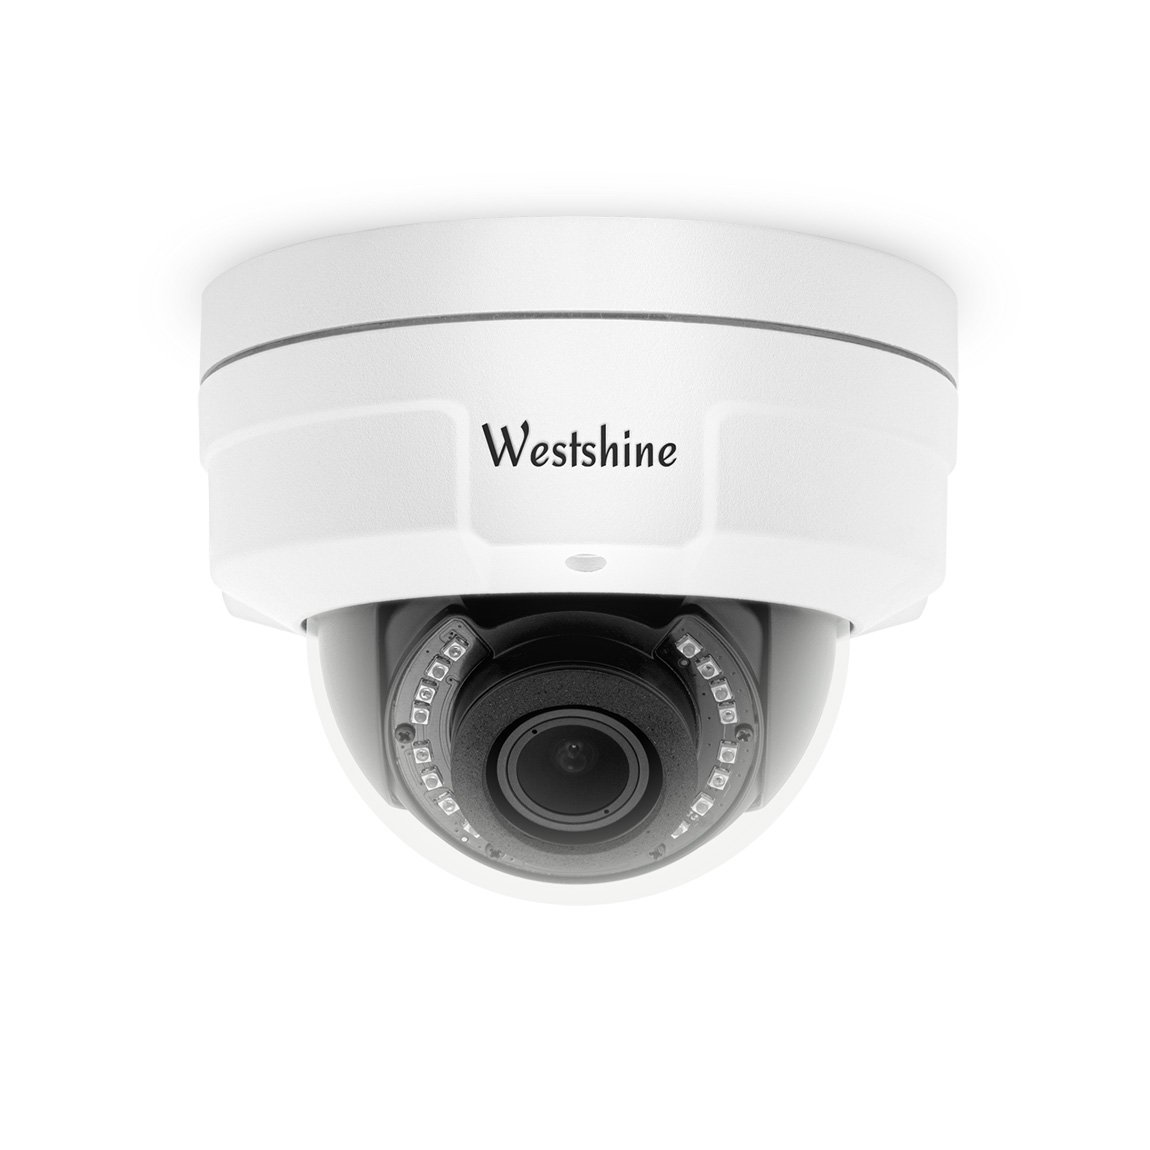 Westshine Security CCTV Dome Camera 1080P 2.8-12mm Varifocal Lens Vandal-proof Dome camera 4-in-1 AHD/TVI/CVI/CVBS Camera with OSD Menu Night Vision Home Indoor Outdoor Cameras WS-HA6201/VF-4N1